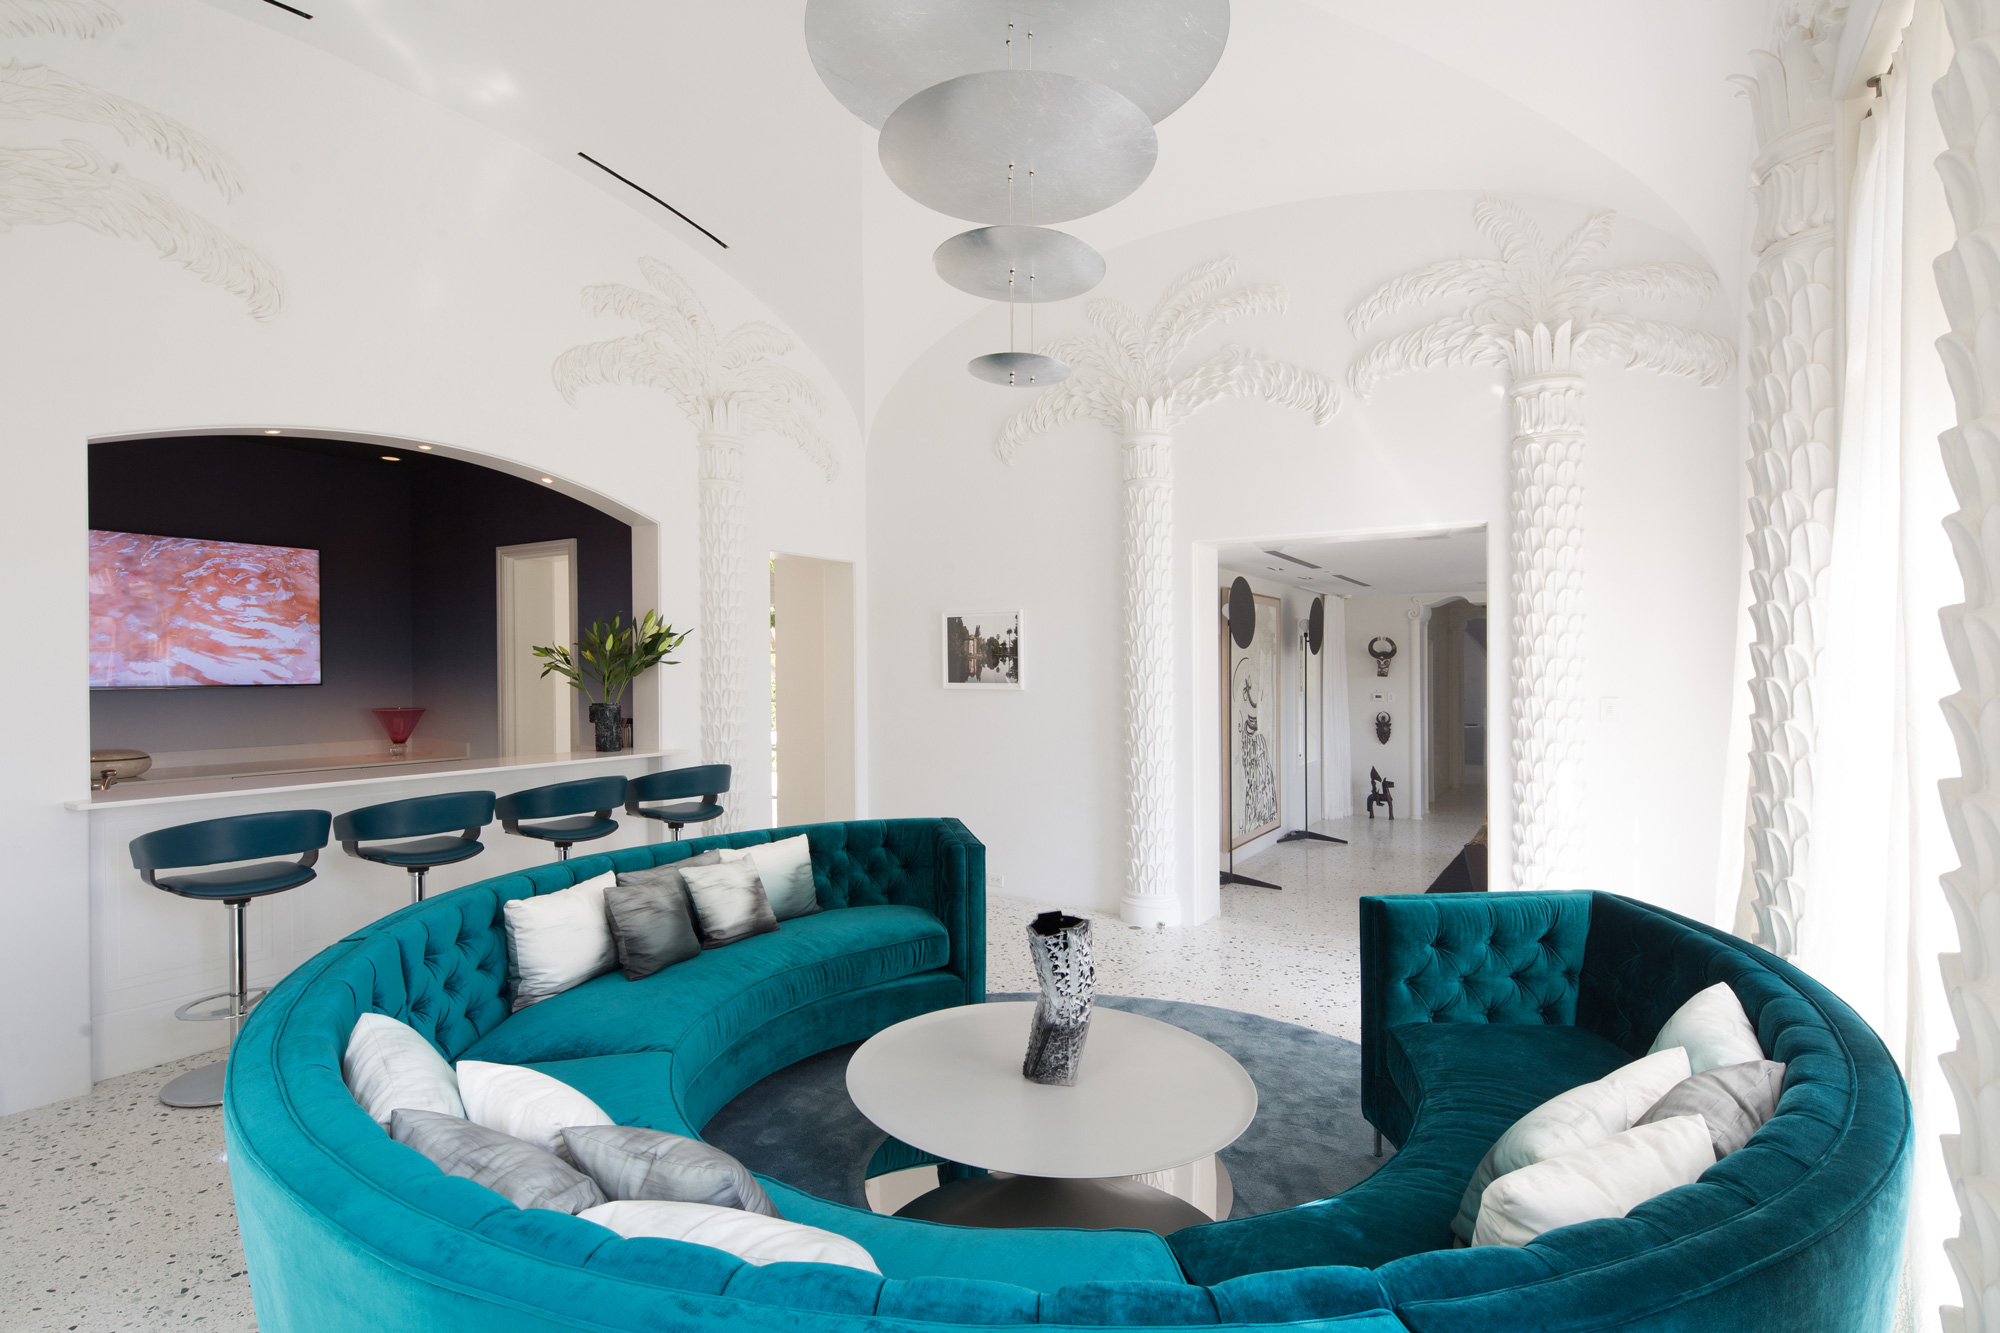 Reddymade Design Crafts An Art Filled Home In Miami Beach